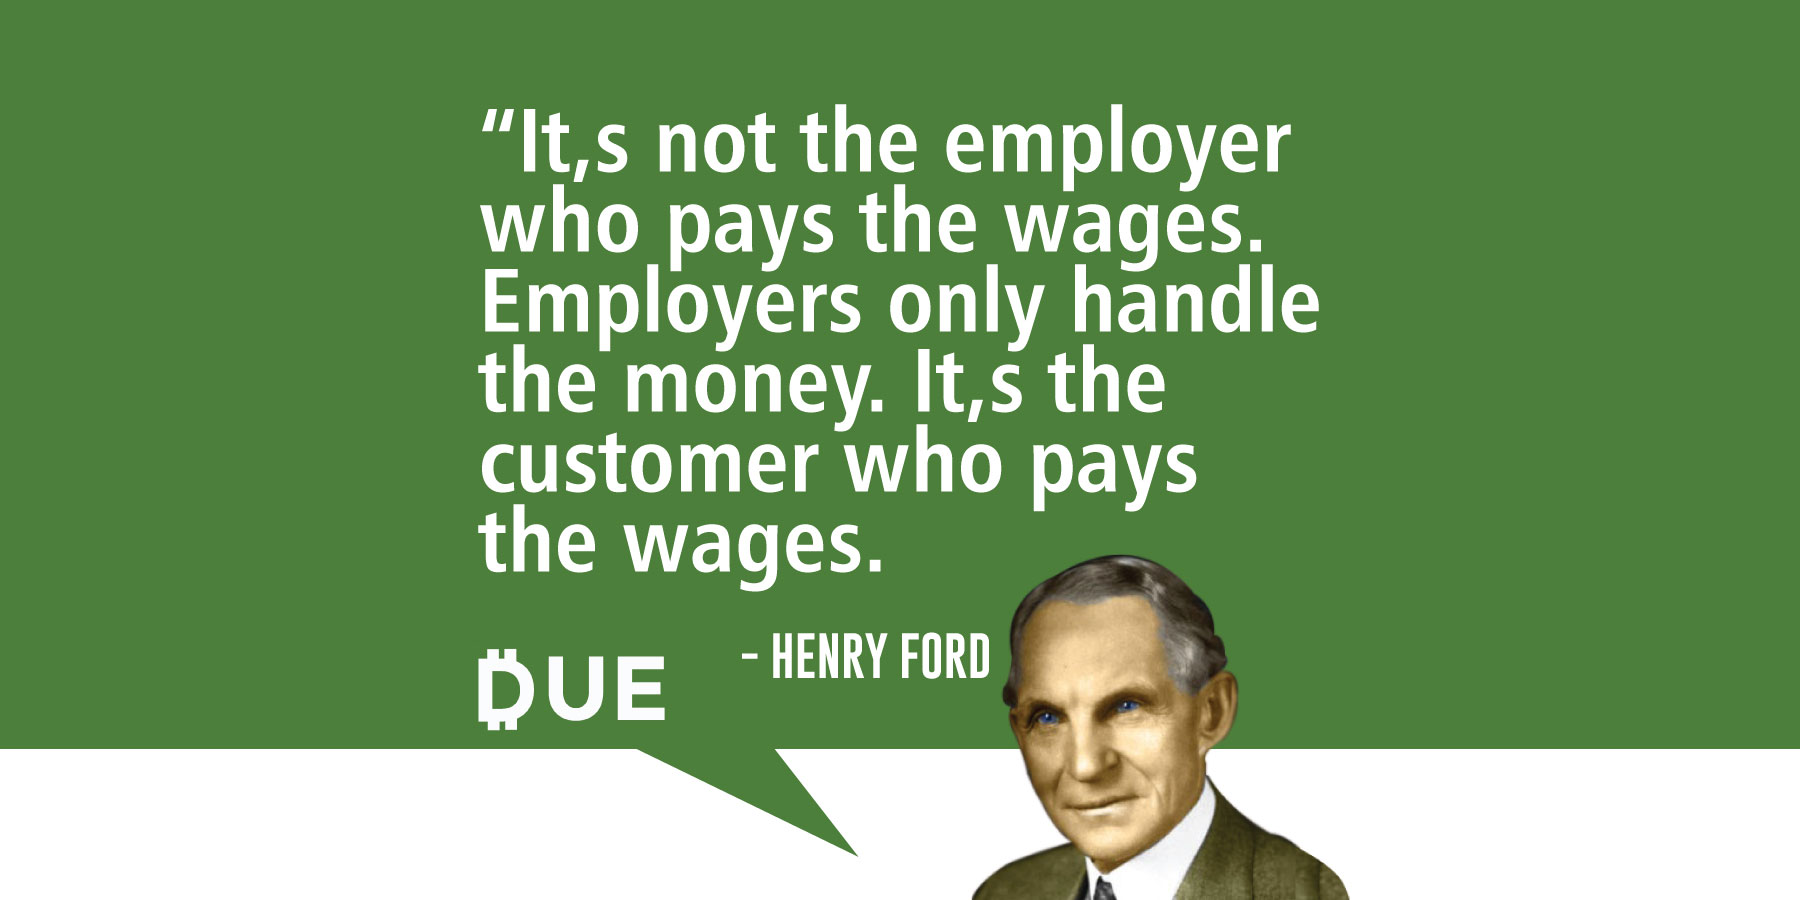 Henry Ford - Customers Pay the Wages